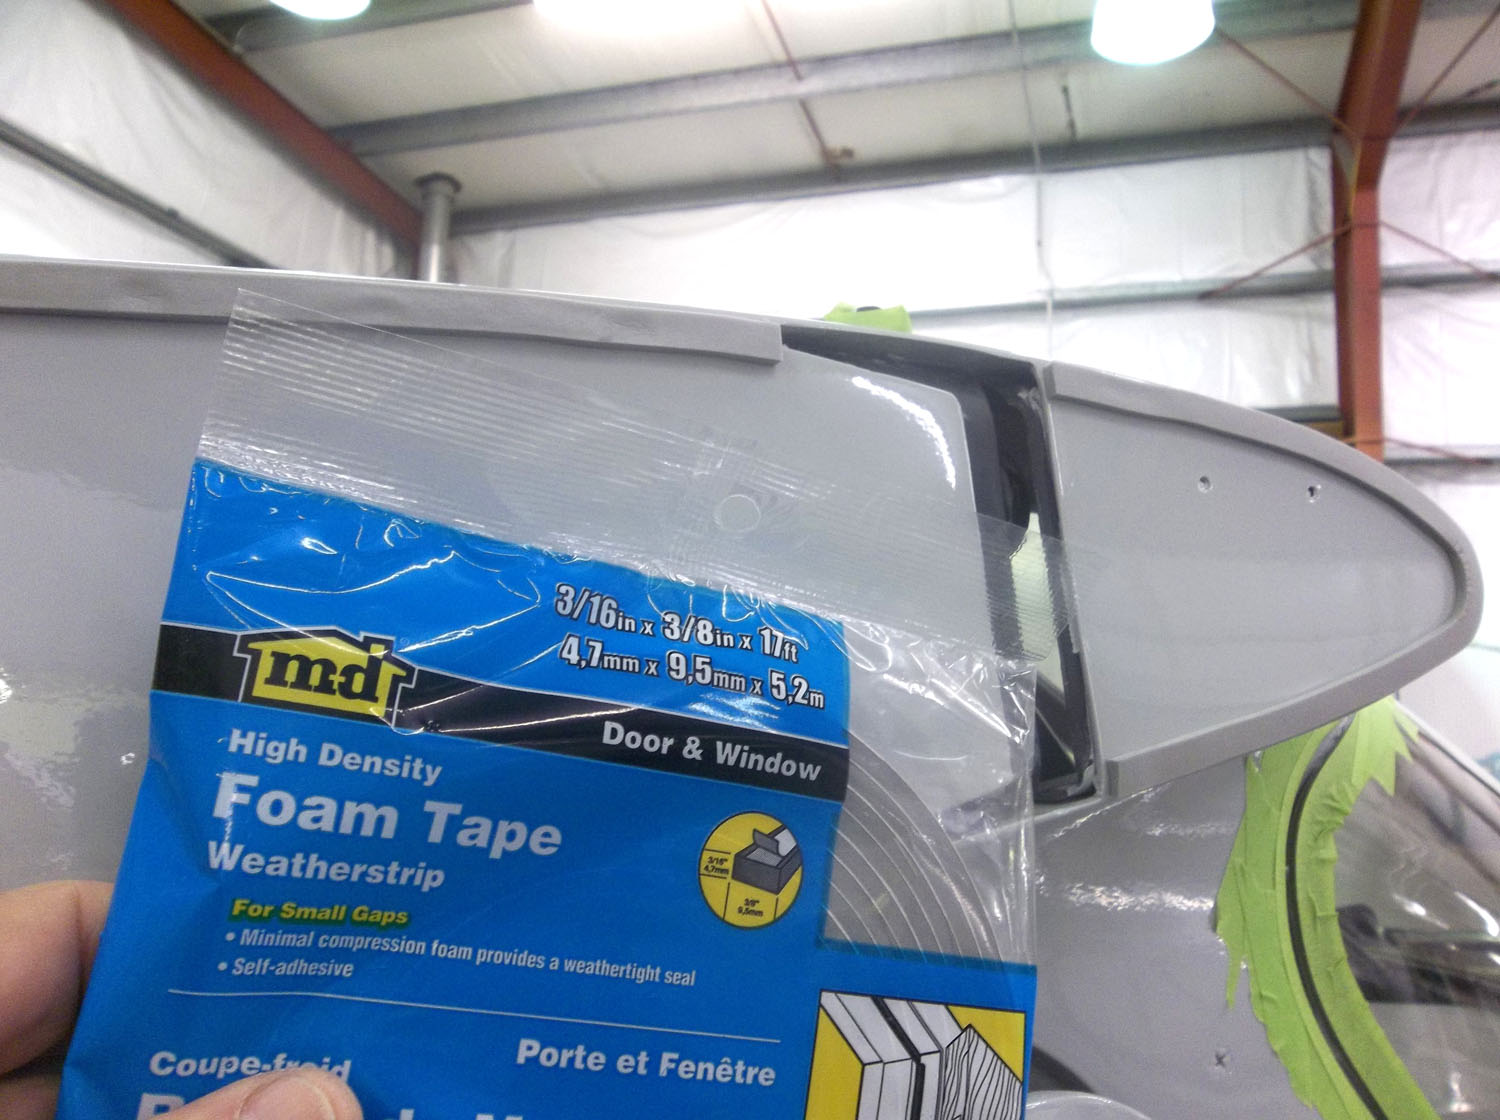 High density foam tape.